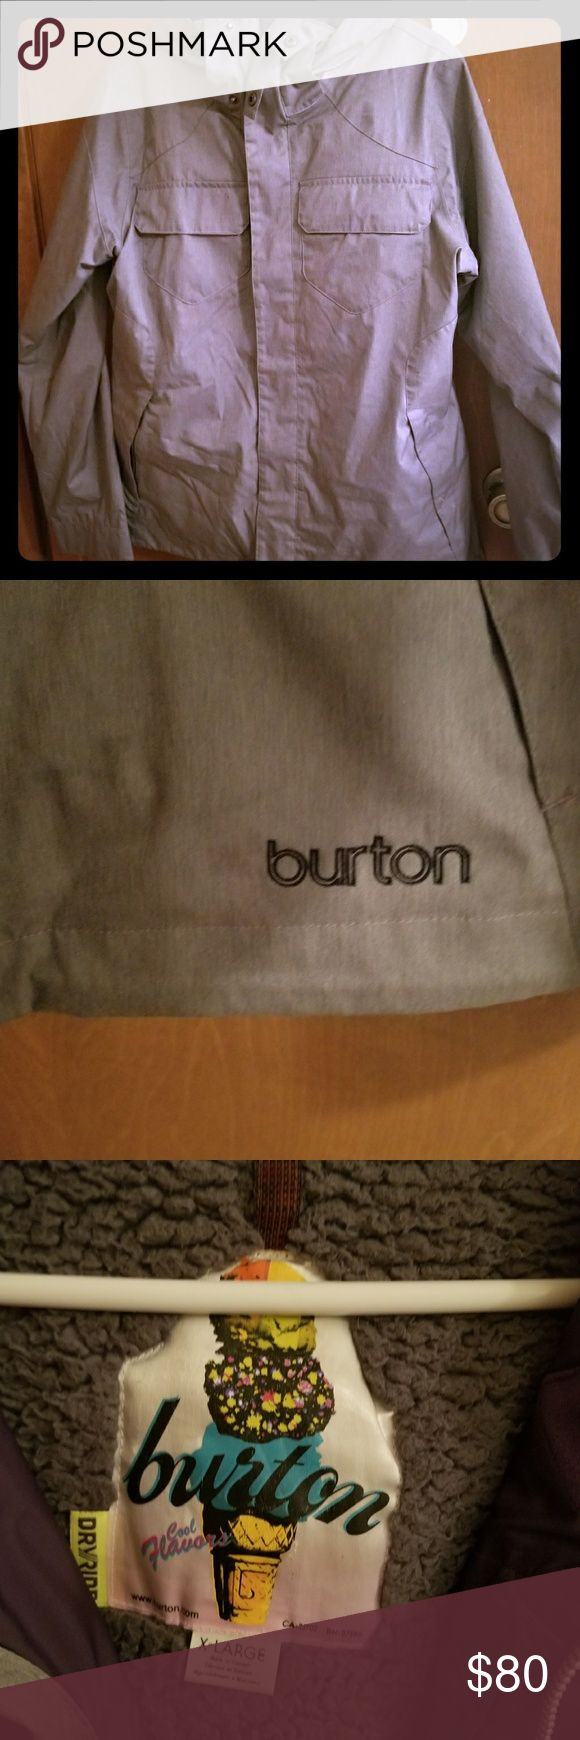 Grey and Purple Burton Snowboarding Jacket XL Gently used, still in good condition Burton Jackets & Coats